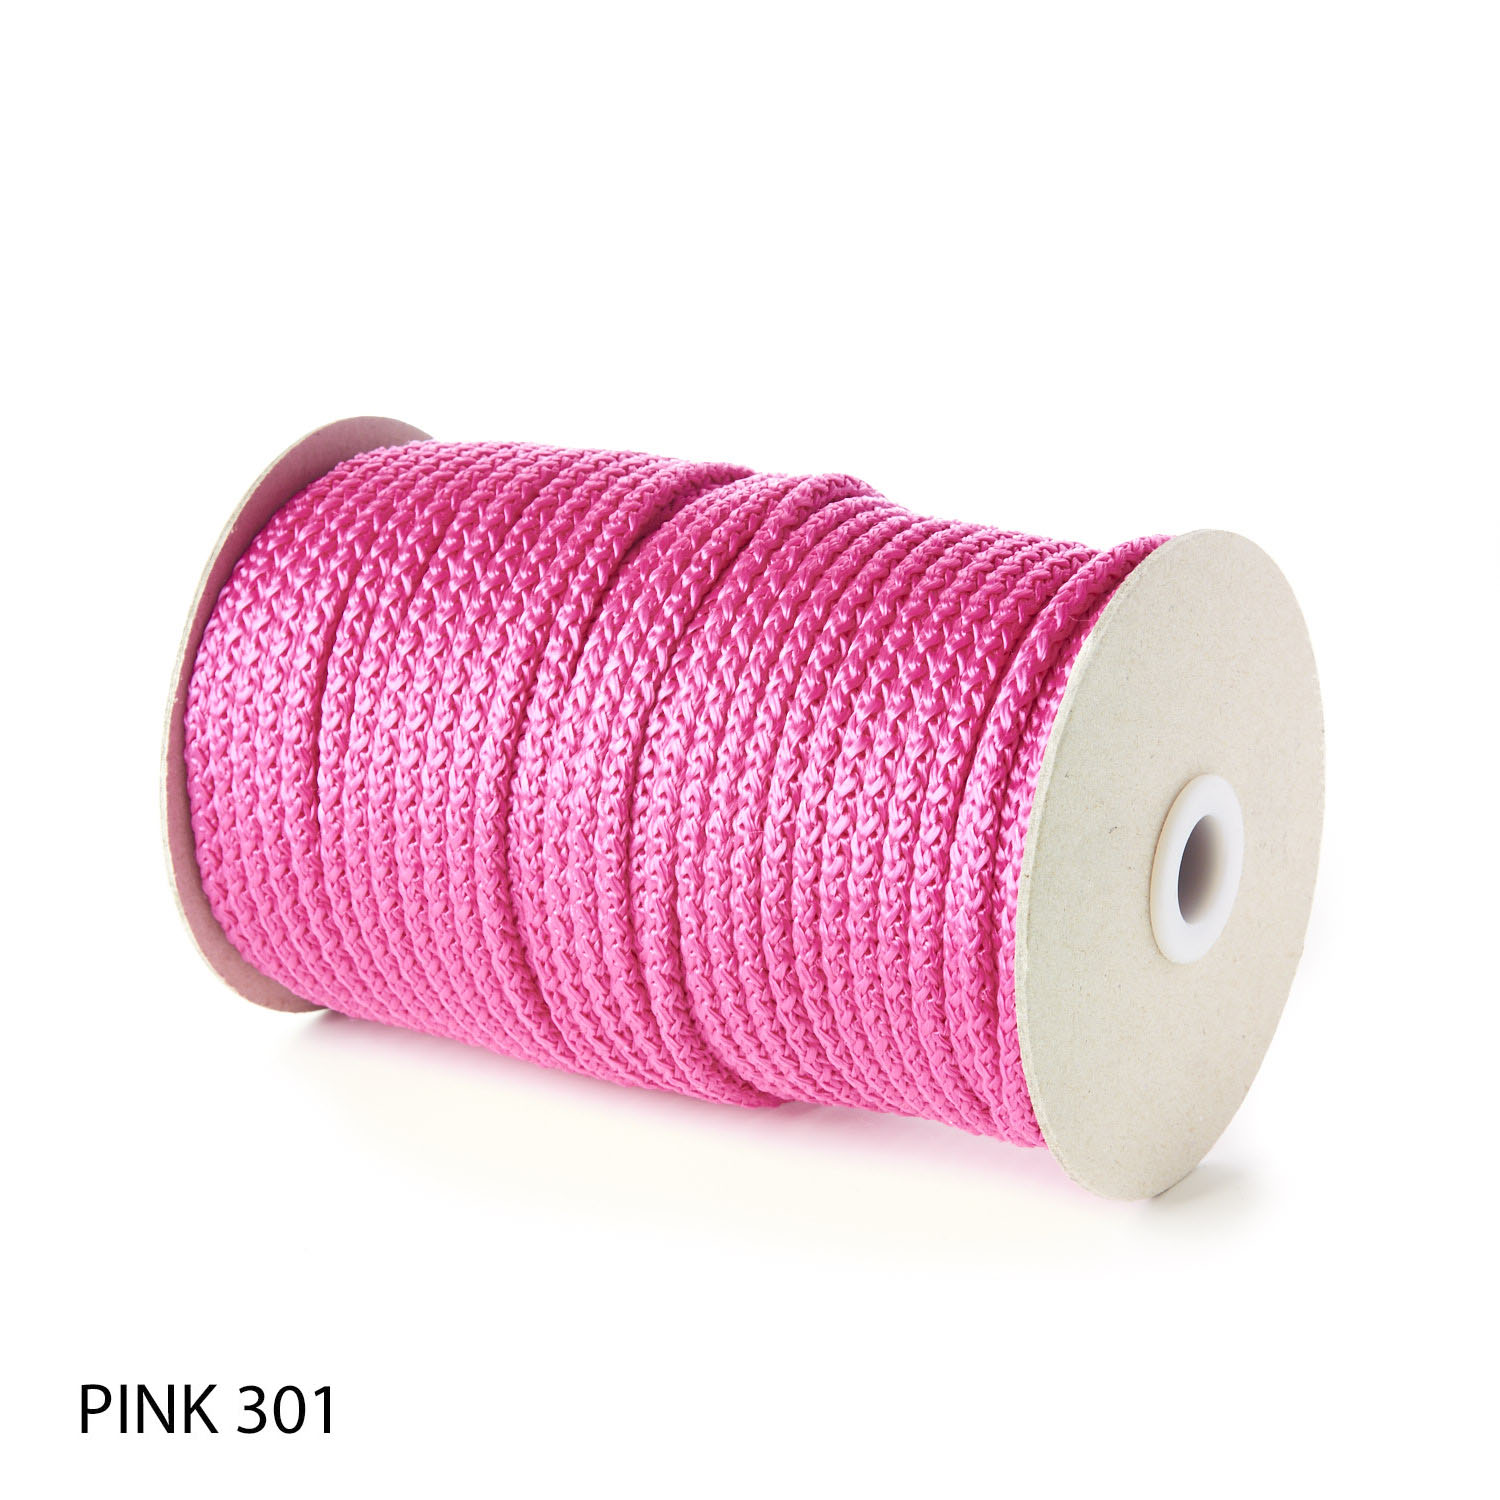 Pink Polypropylene Knitted Cords Round String Rope Strong